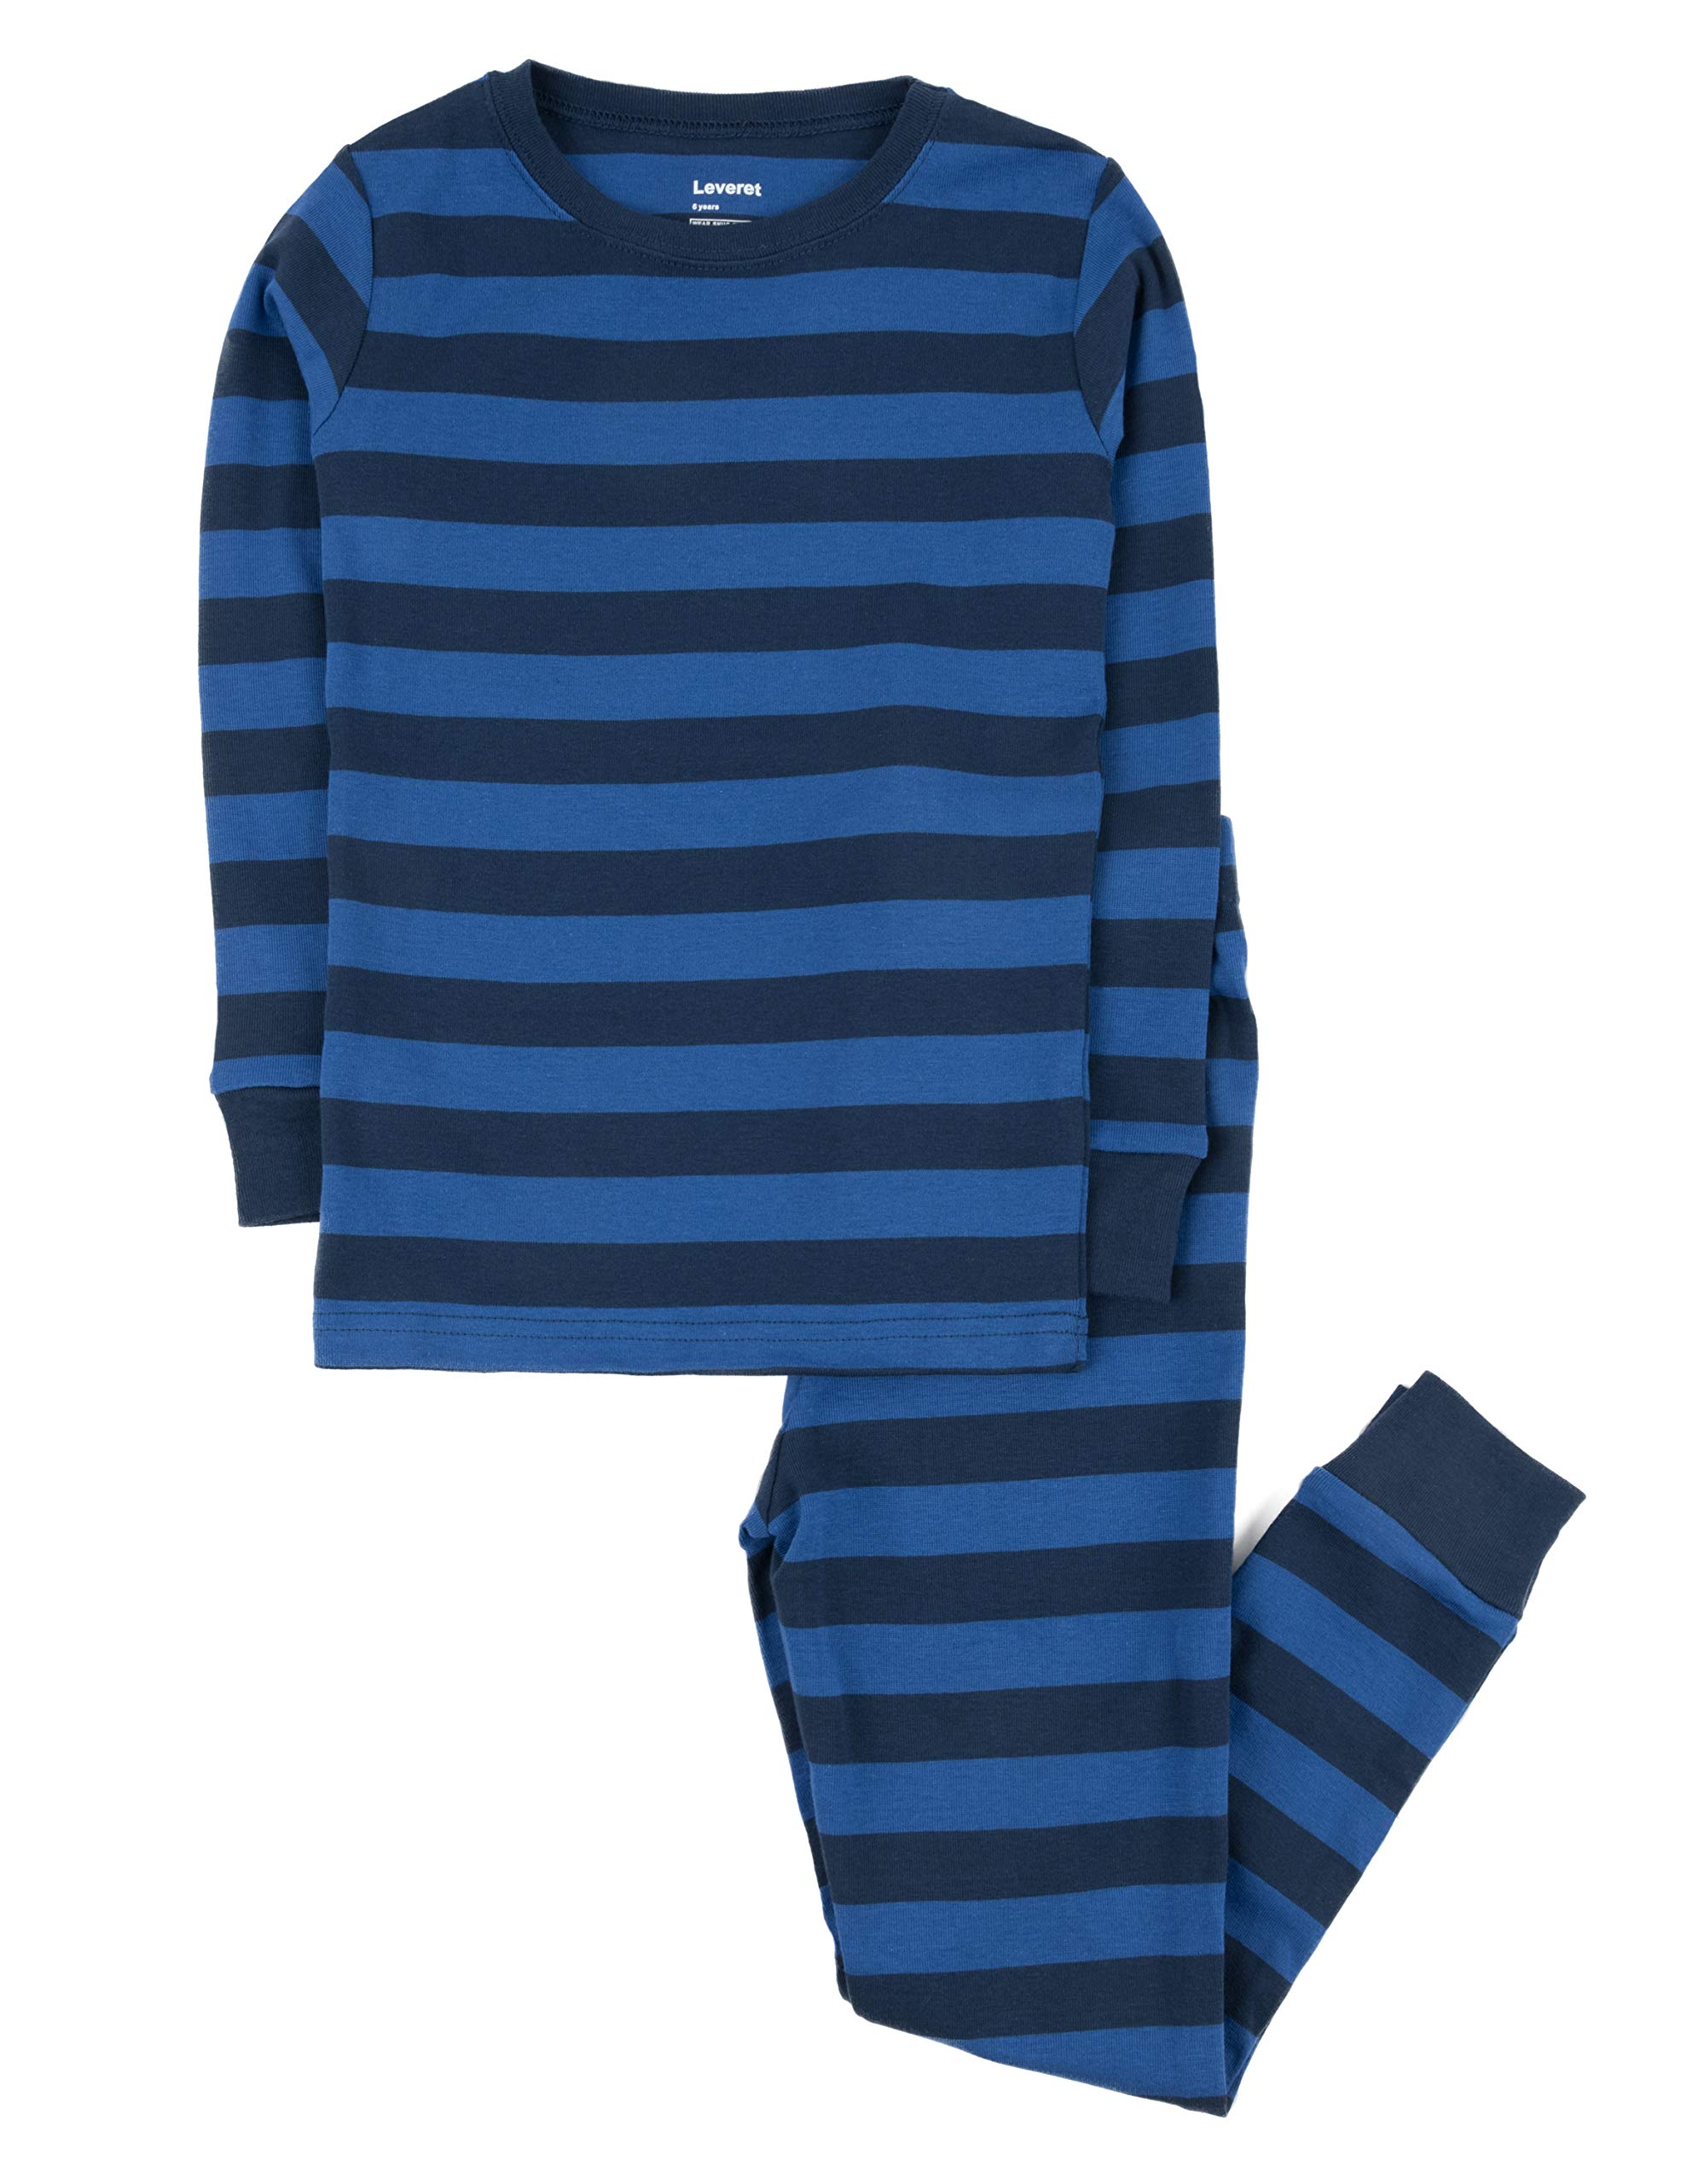 Leveret Striped Kids & Toddler Boys Pajamas 2 Piece Pjs Set 100% Cotton (12 Years, Blue & Navy)